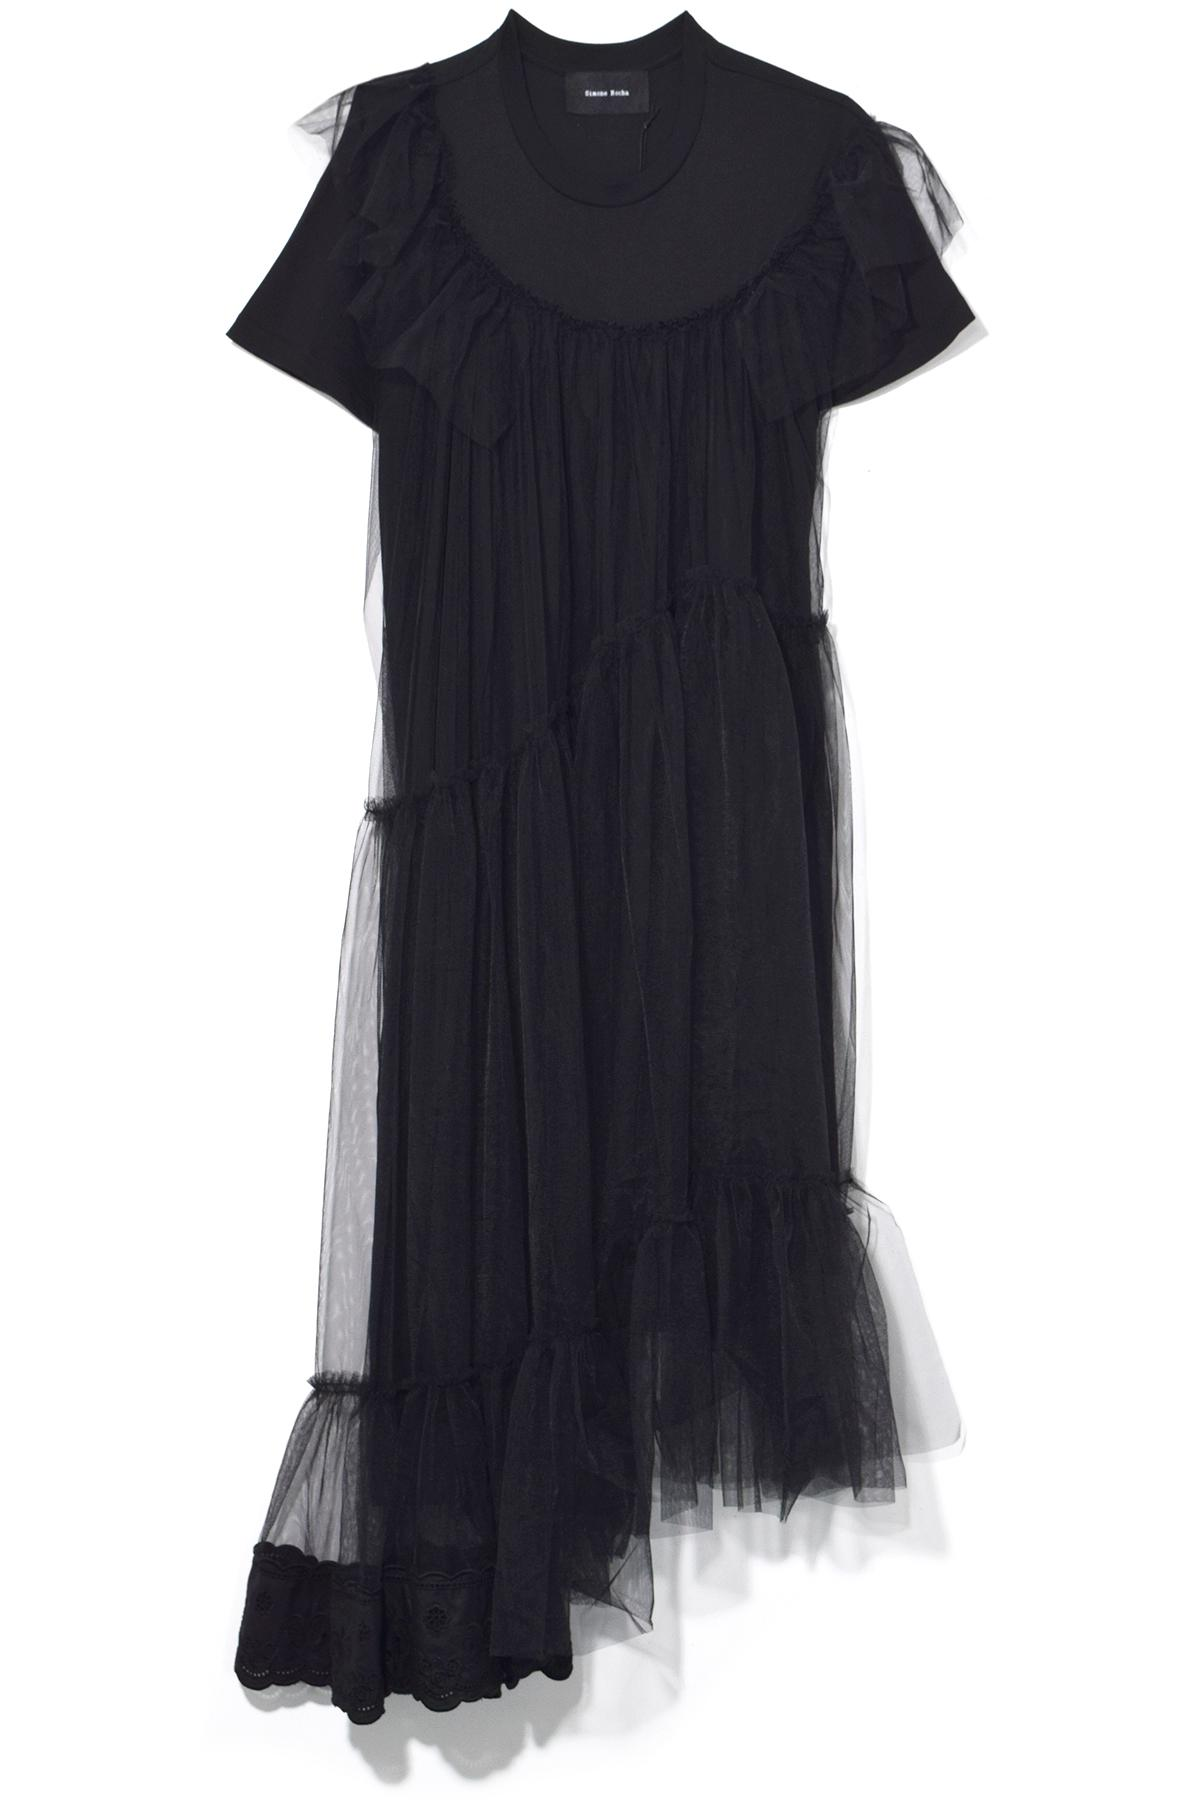 Rochas Woman Tulle-trimmed Crepe Gown Black Size 40 Rochas Ut1MNBbsi